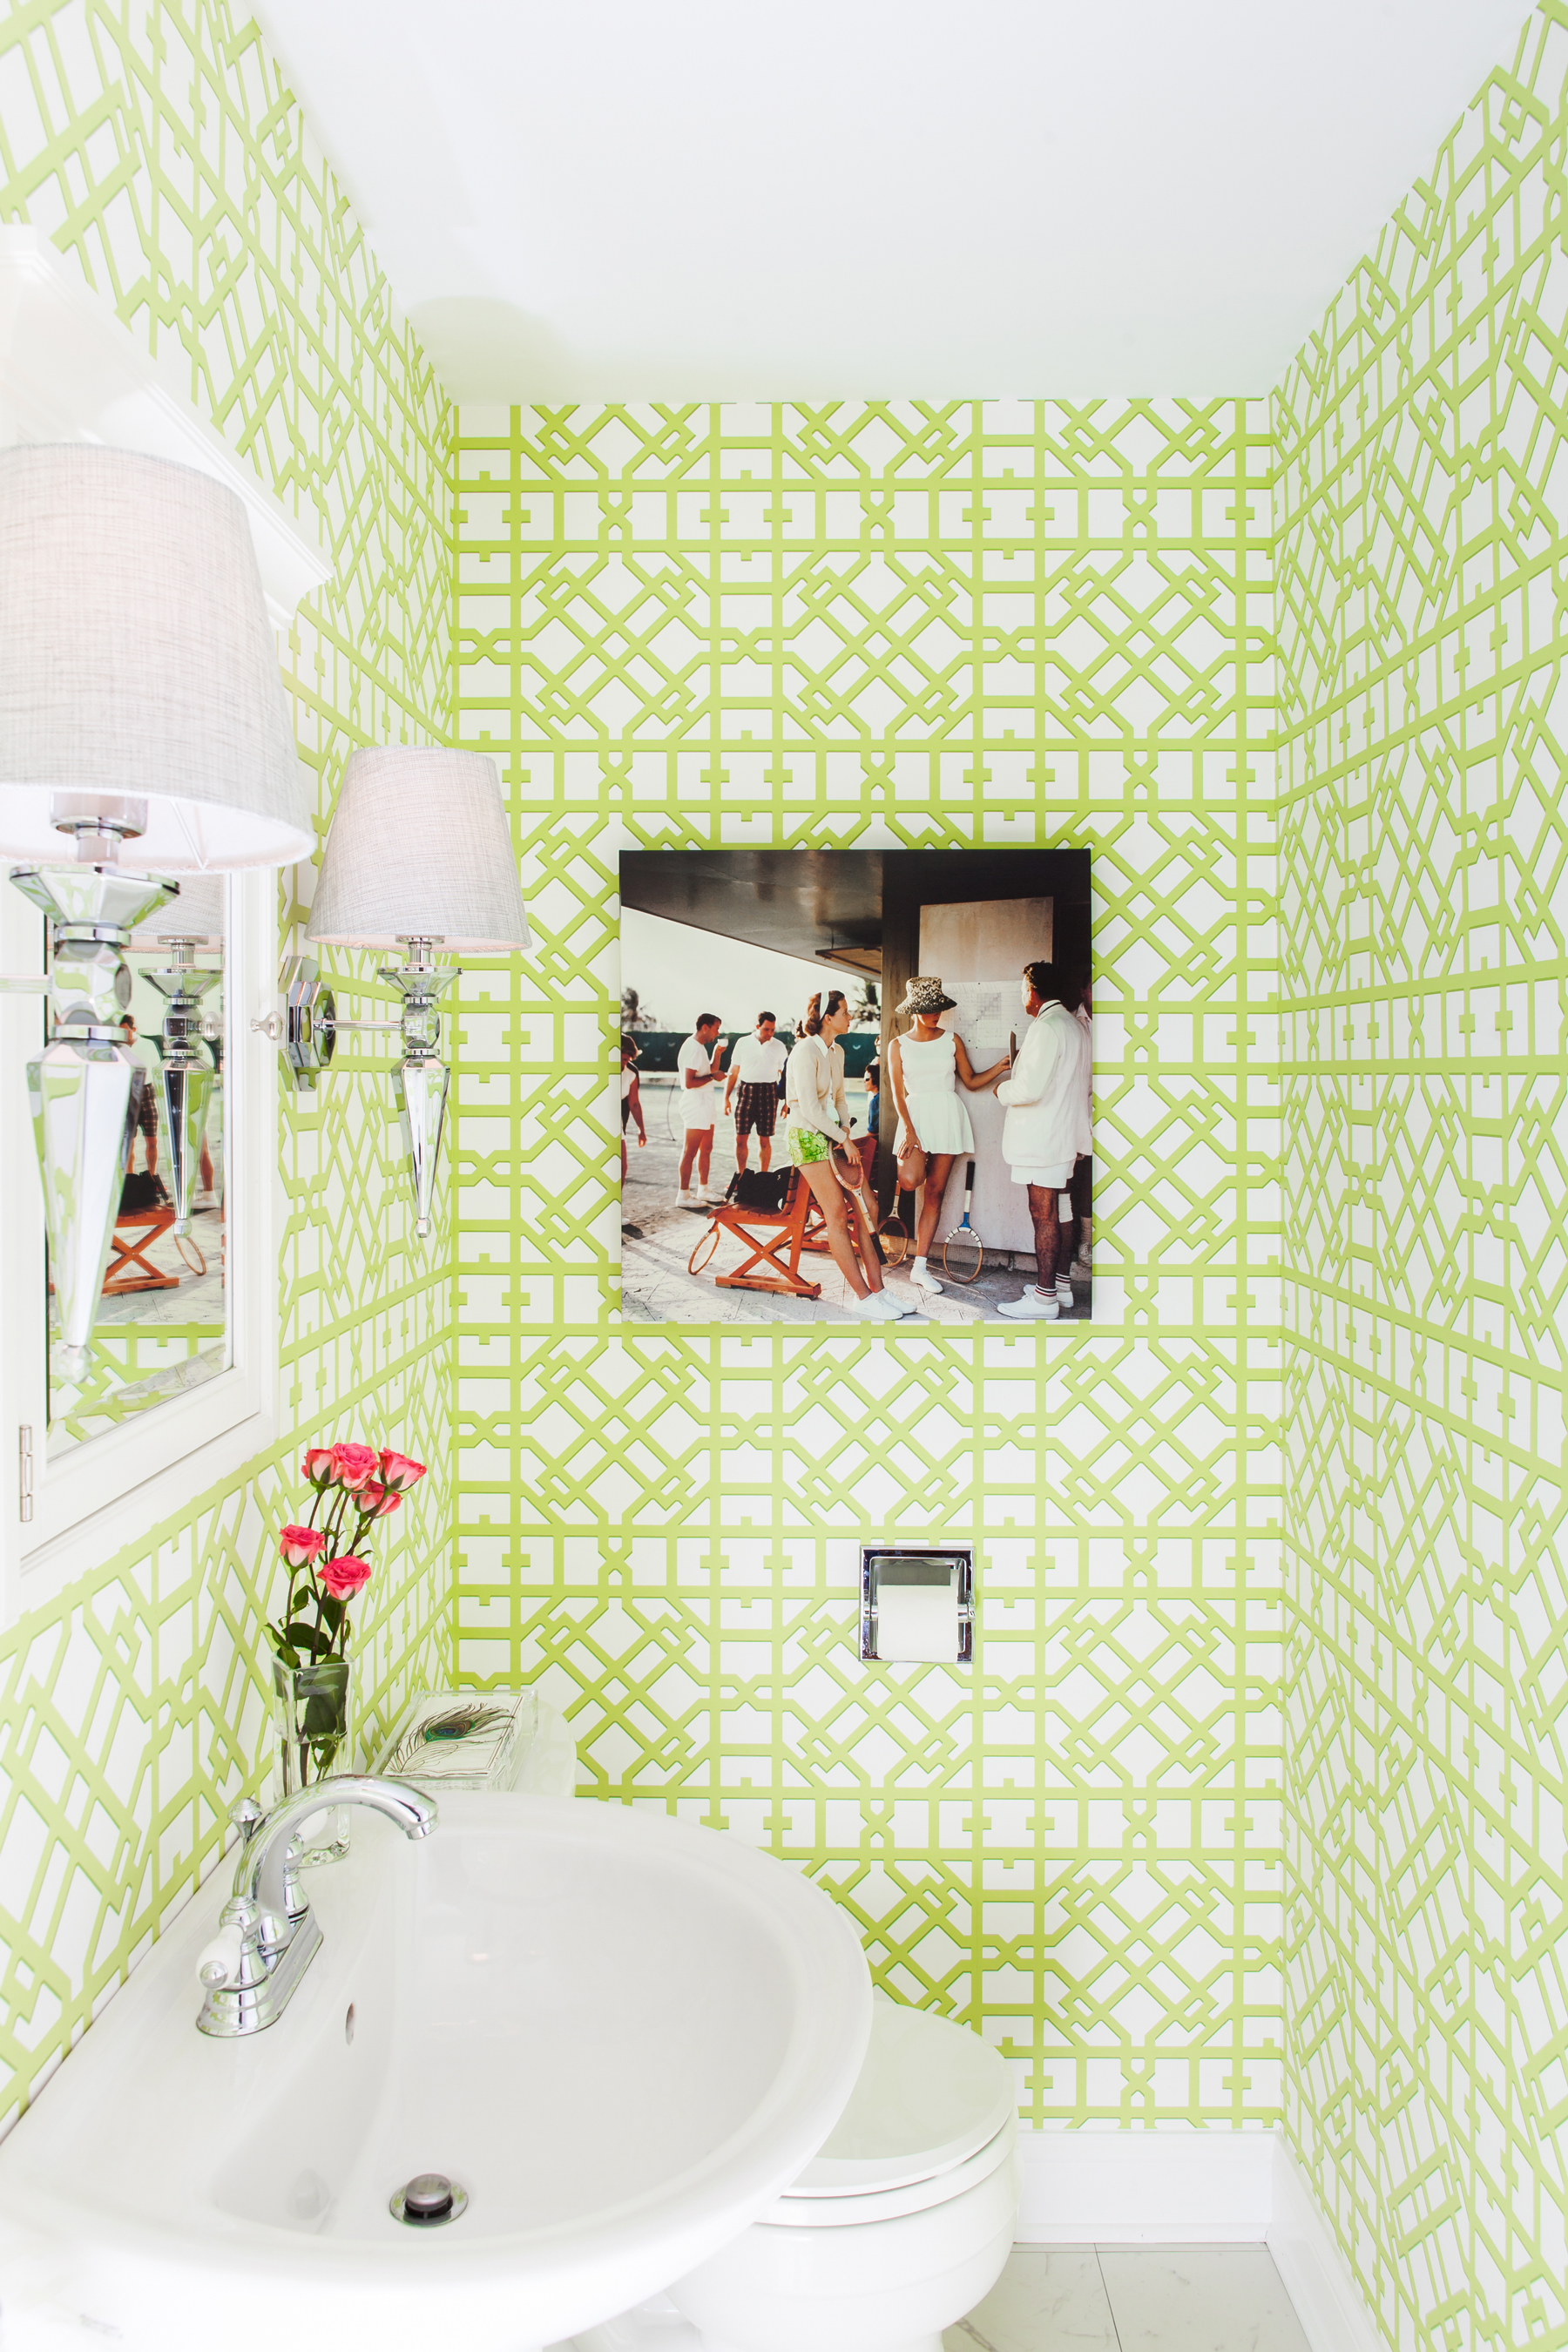 Staci-Munic-interiors-powder-room.jpg